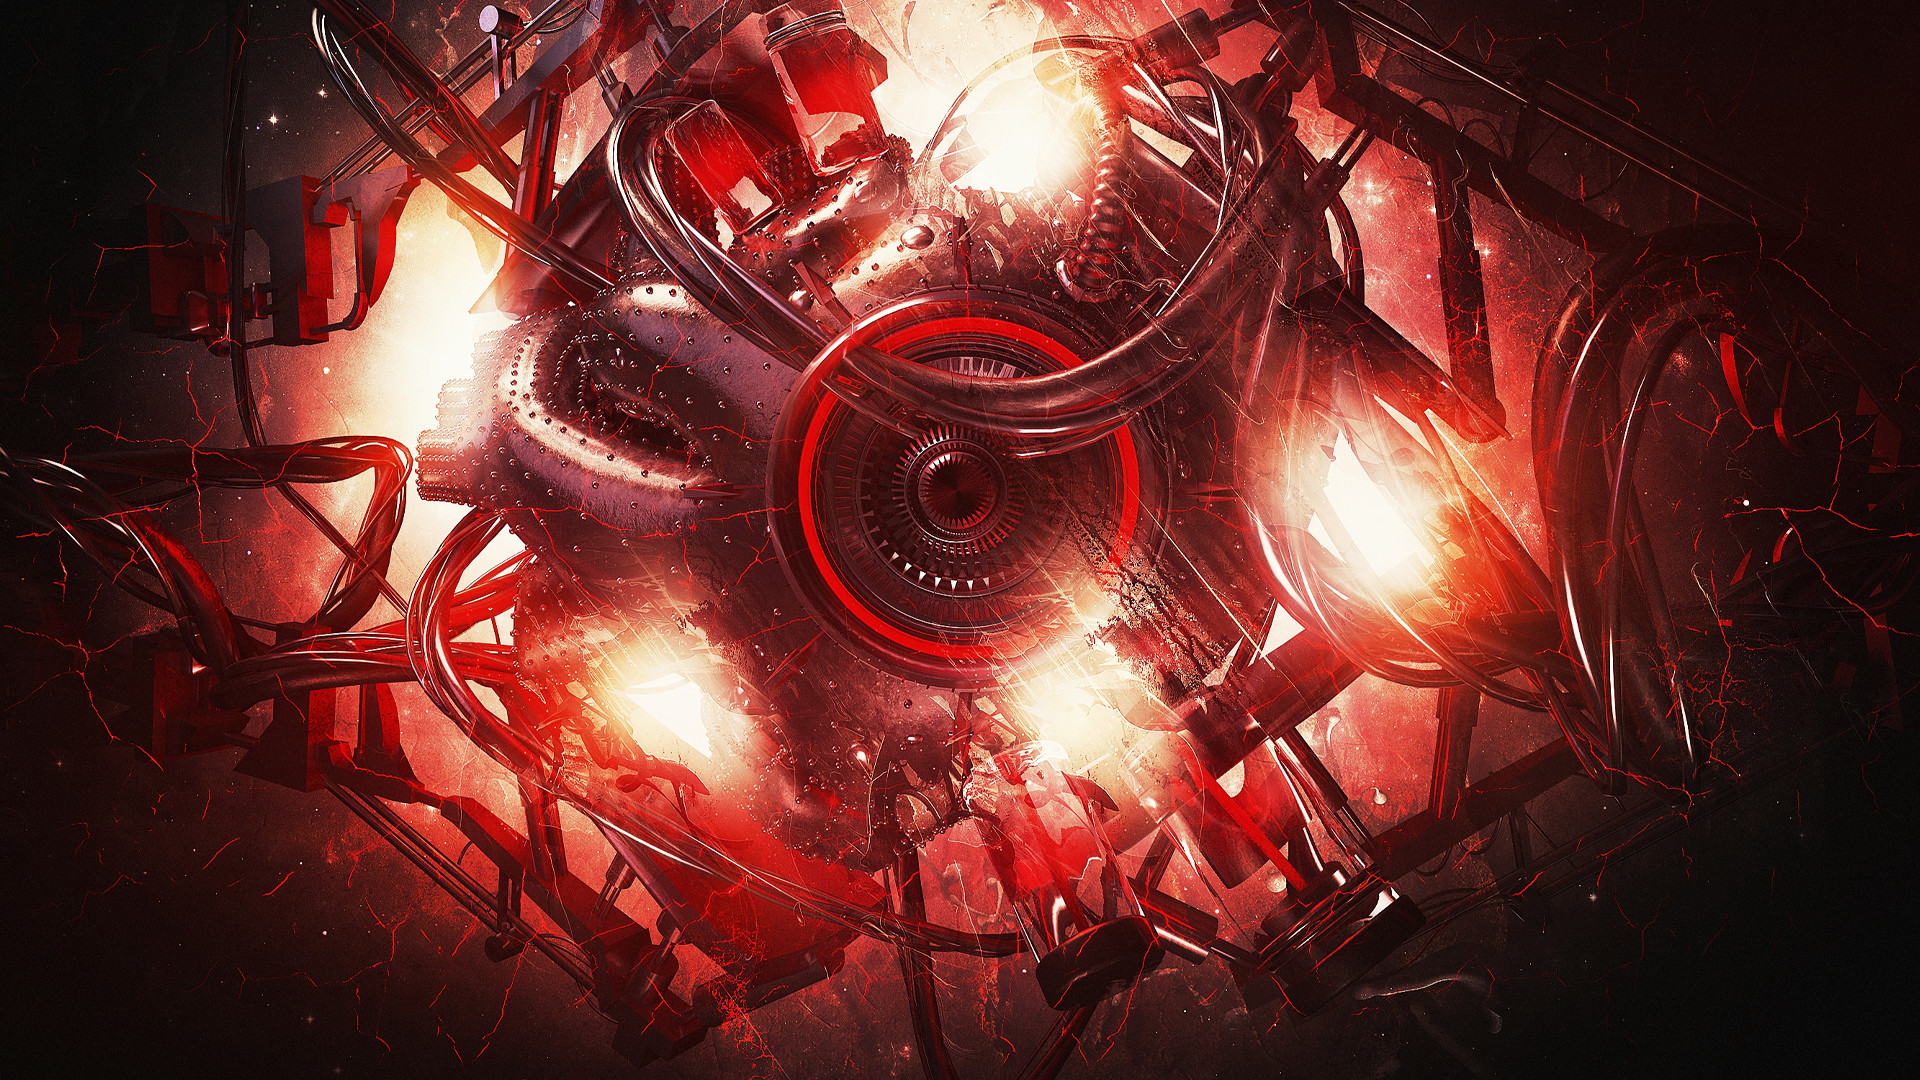 1920x1080 #Lacza #DigitalArt #Abstract #Sphere #Glowing #Red #Machine #Pipes